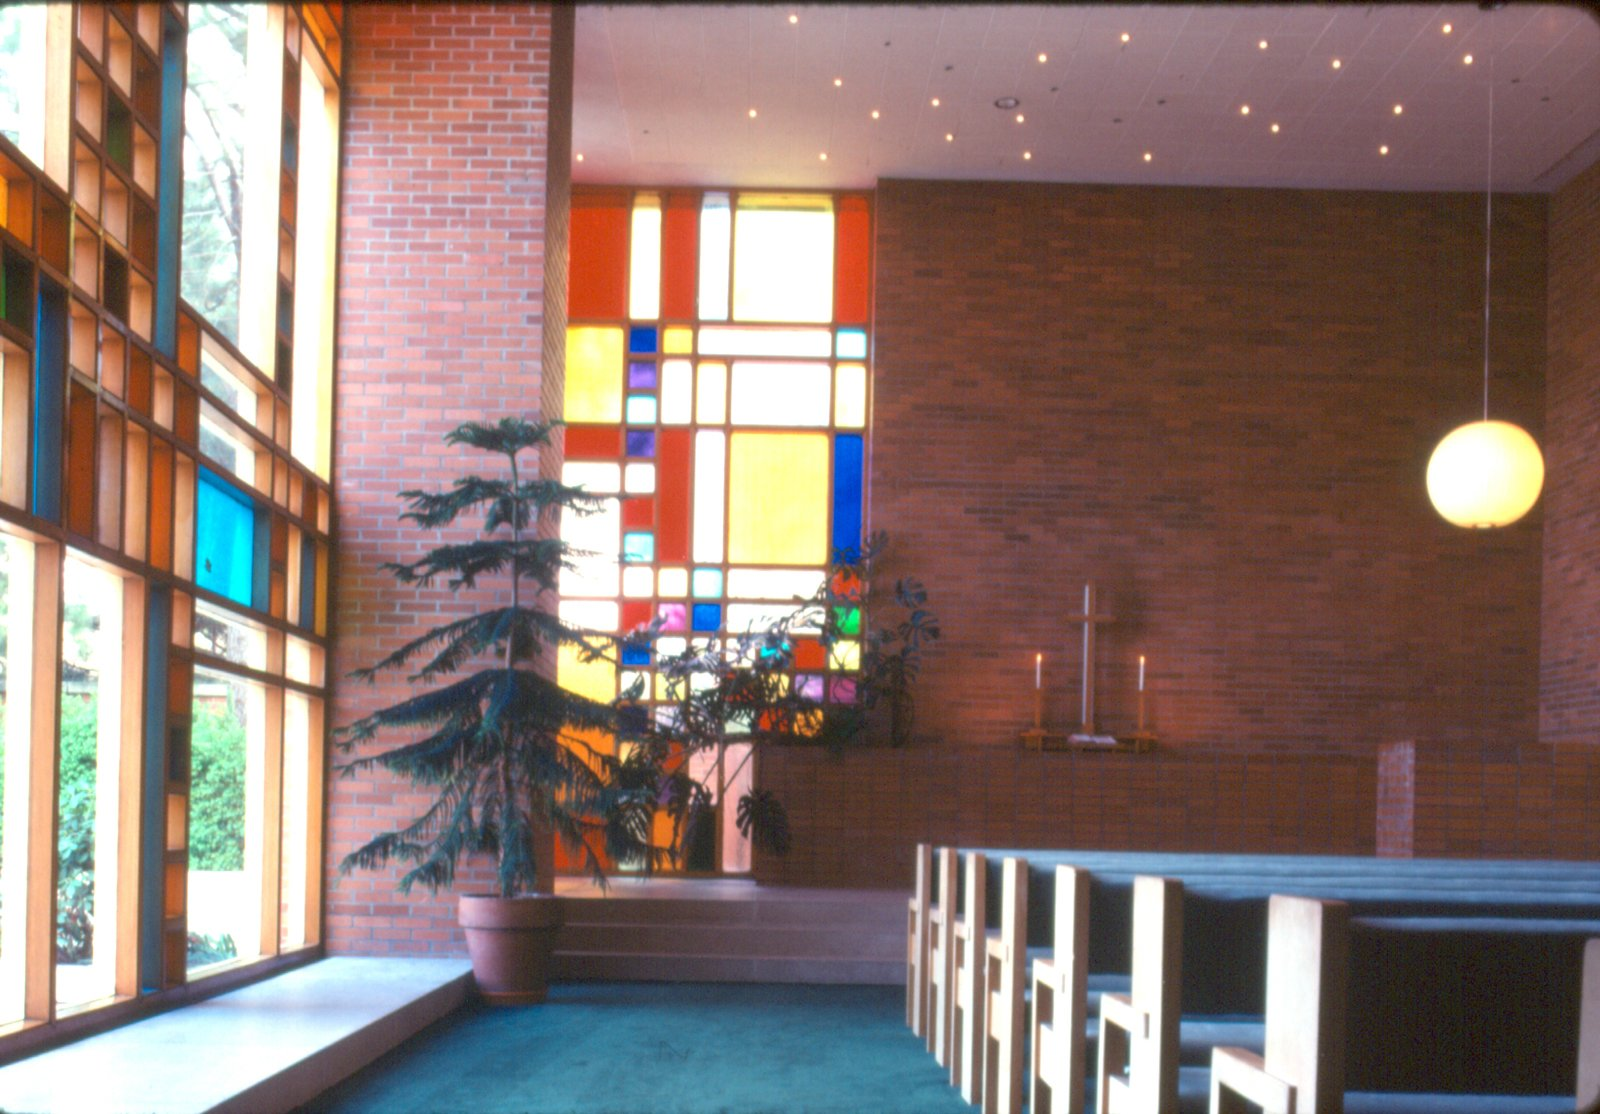 Blocks of color in the stained glass windows and decidedly more sober brick are the dominant materials of the main sanctuary of Midland's First Methodist Church.  Photo 22 of 28 in Hometown Hero